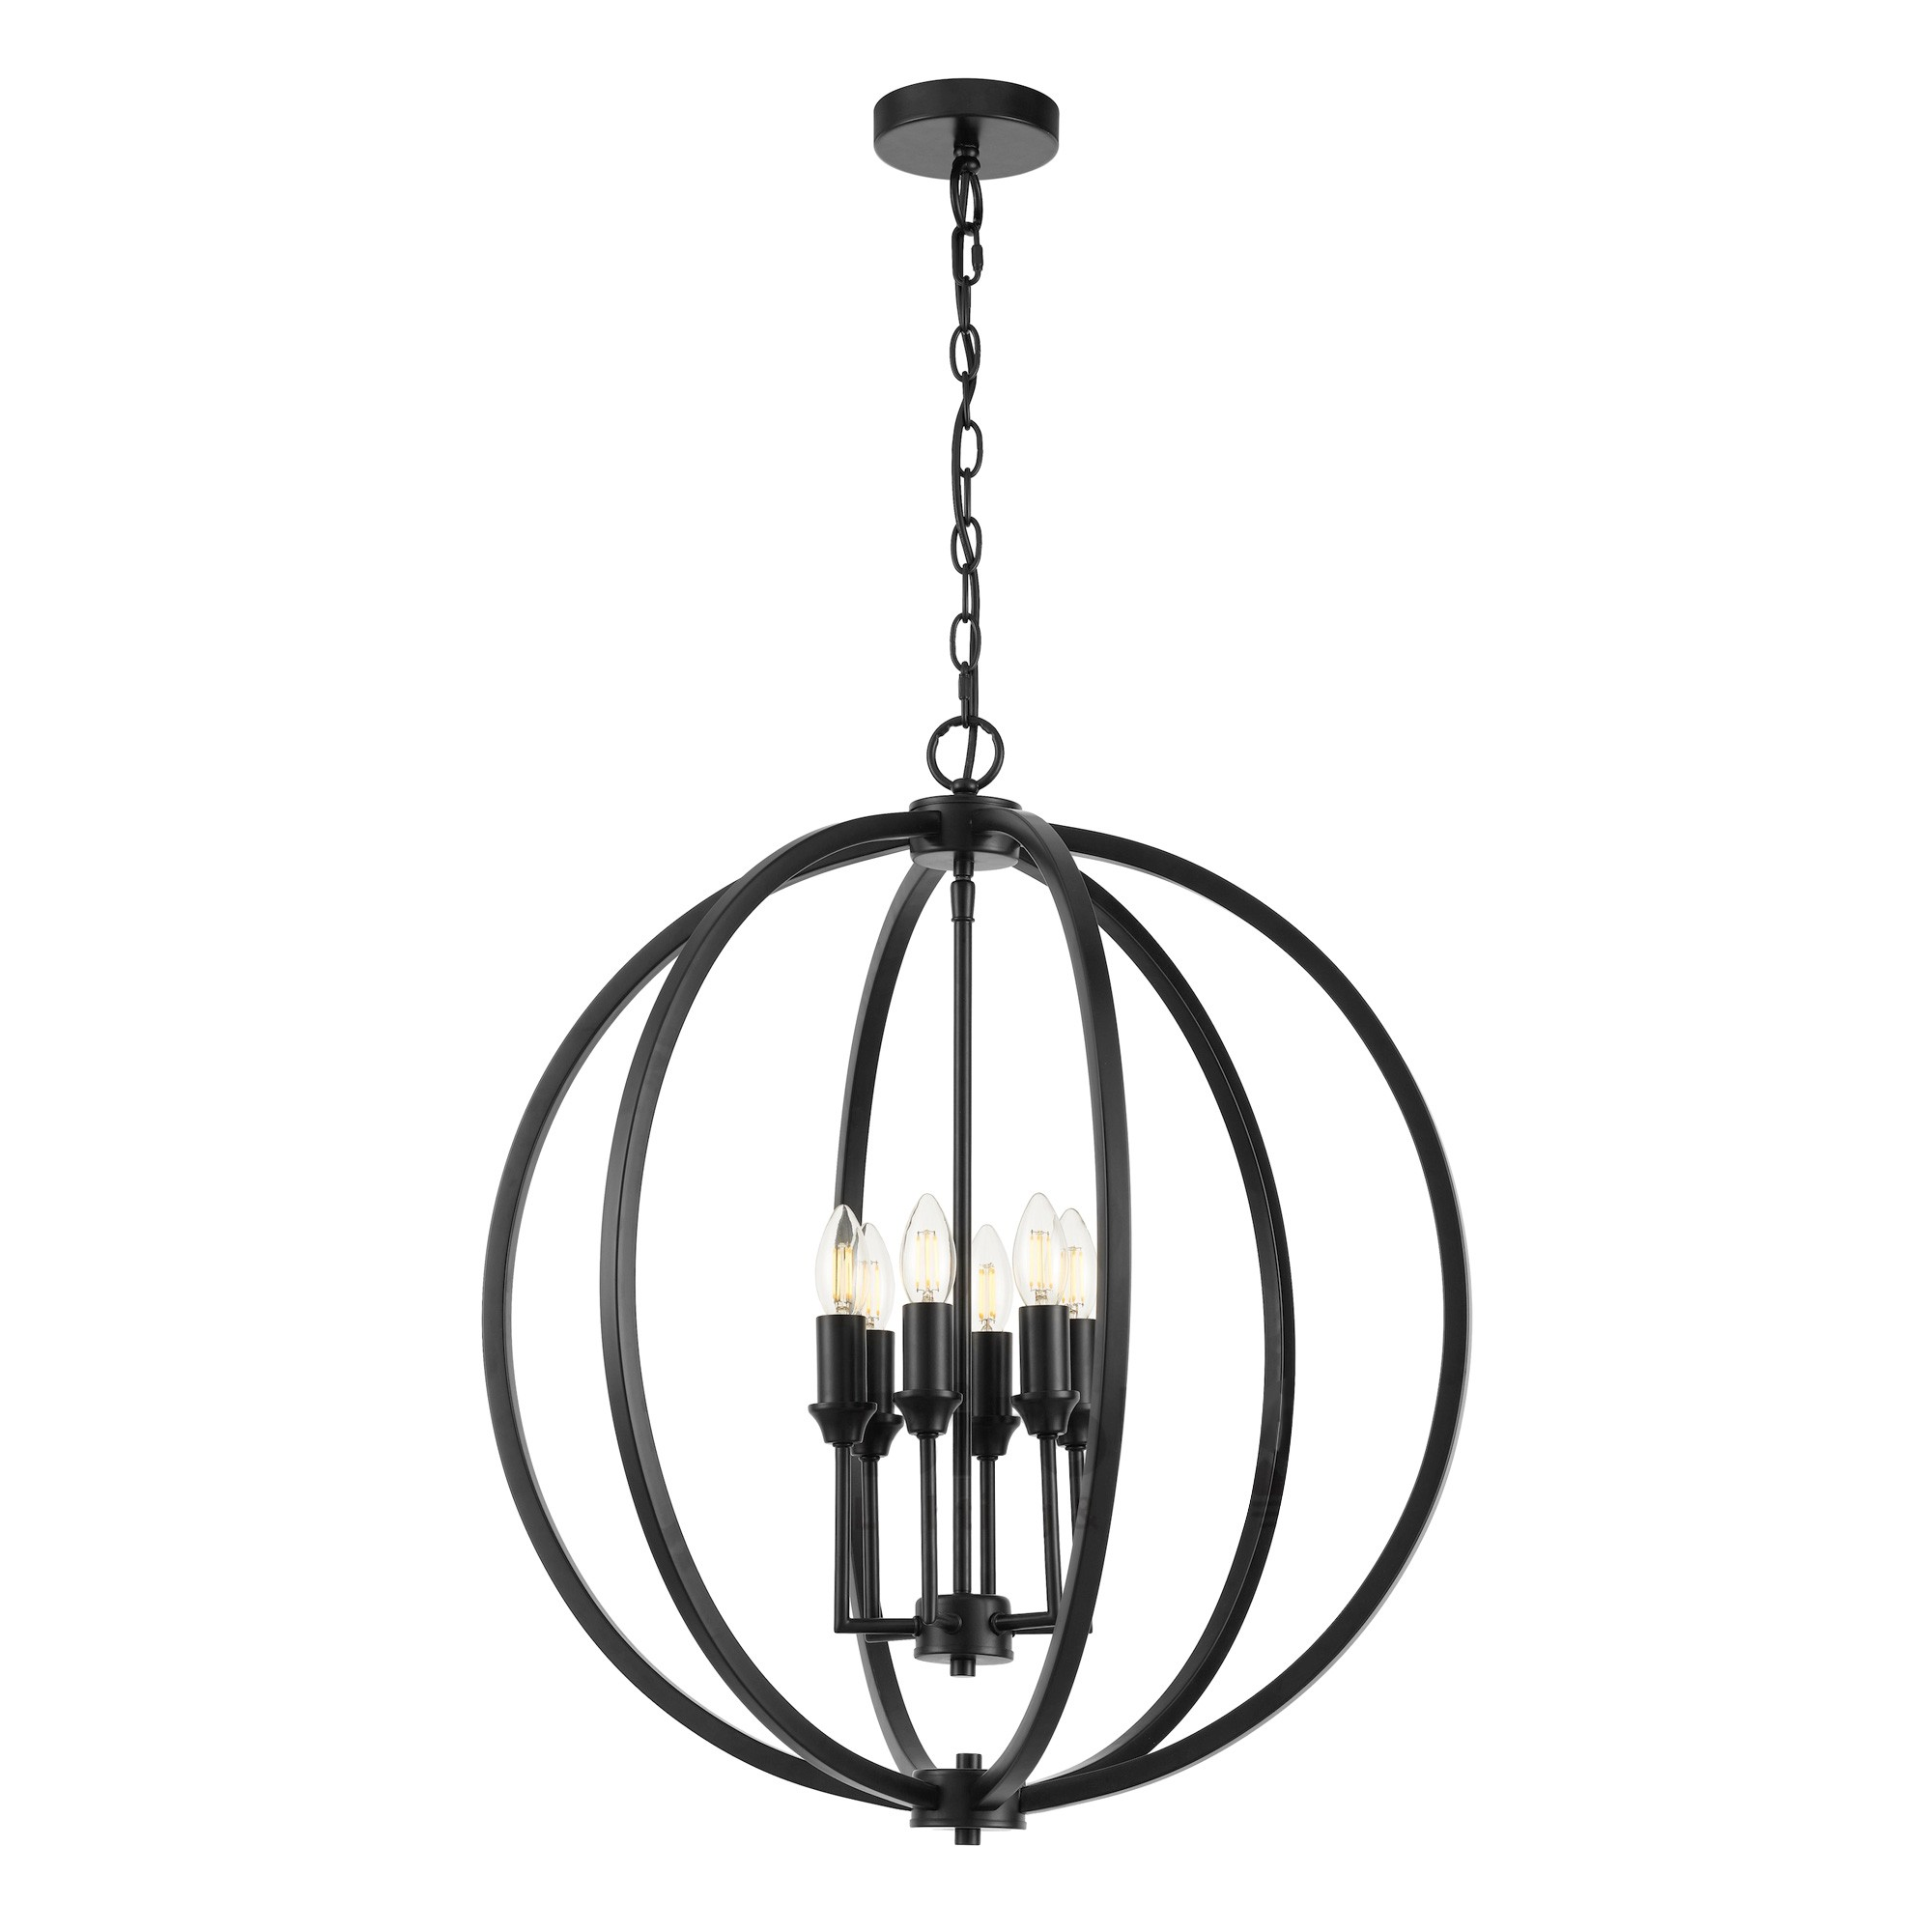 Kendall Metal Sphere Pendant Light, Large, Black